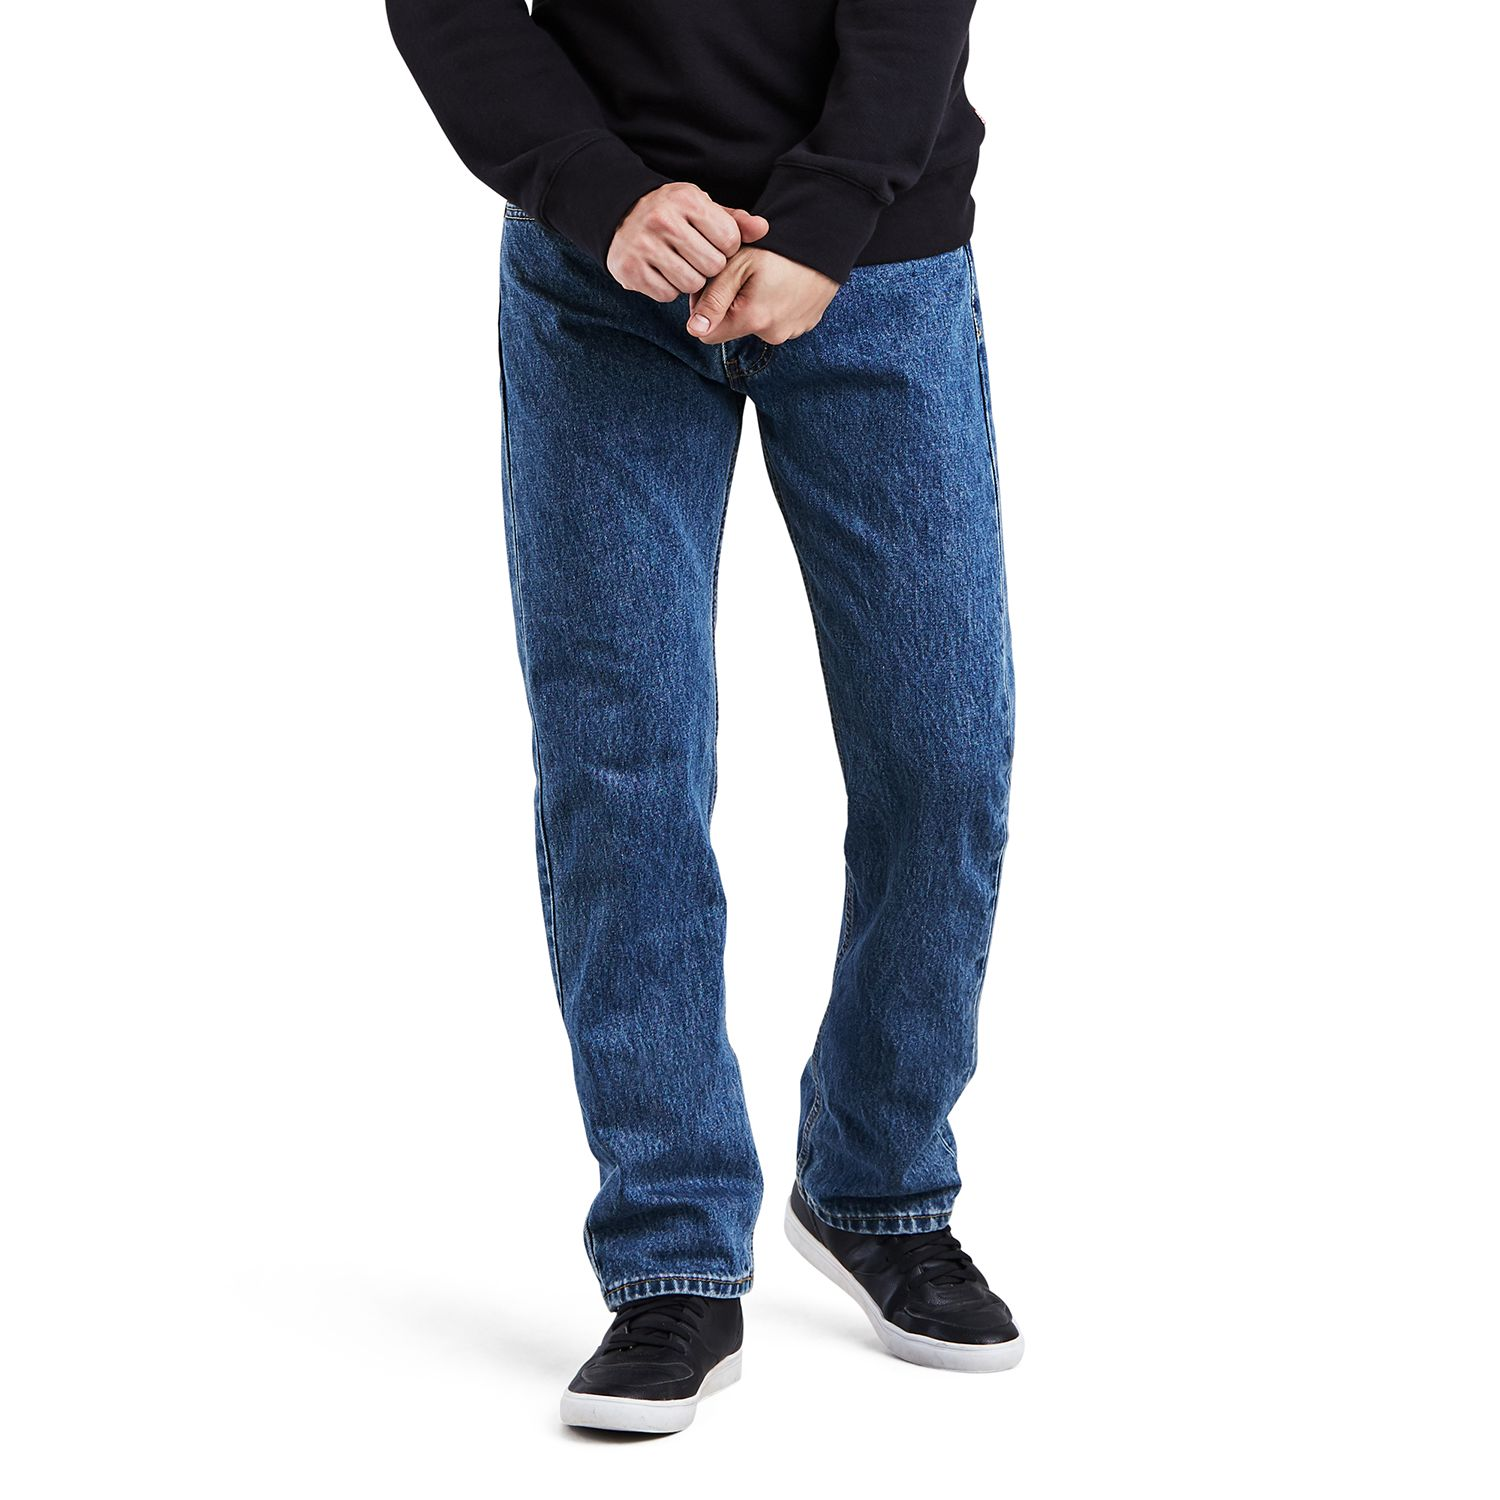 levis 505 Standardize | Mens Jeans Outlet